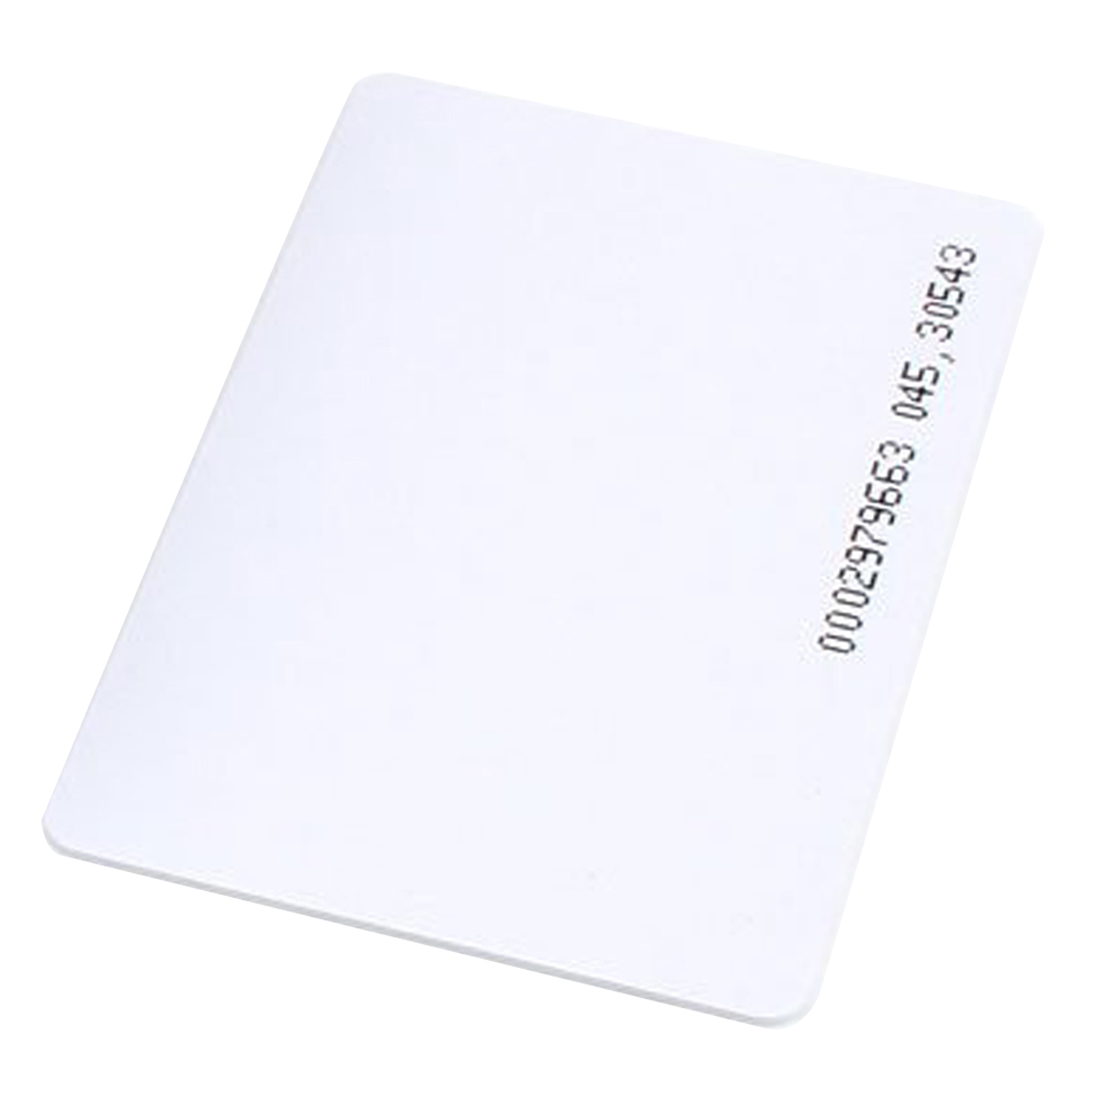 2 Packs 50 pieces Intelligent Proximity EM4100 125kHz RFID Proximity Card Entry Empty ID Access